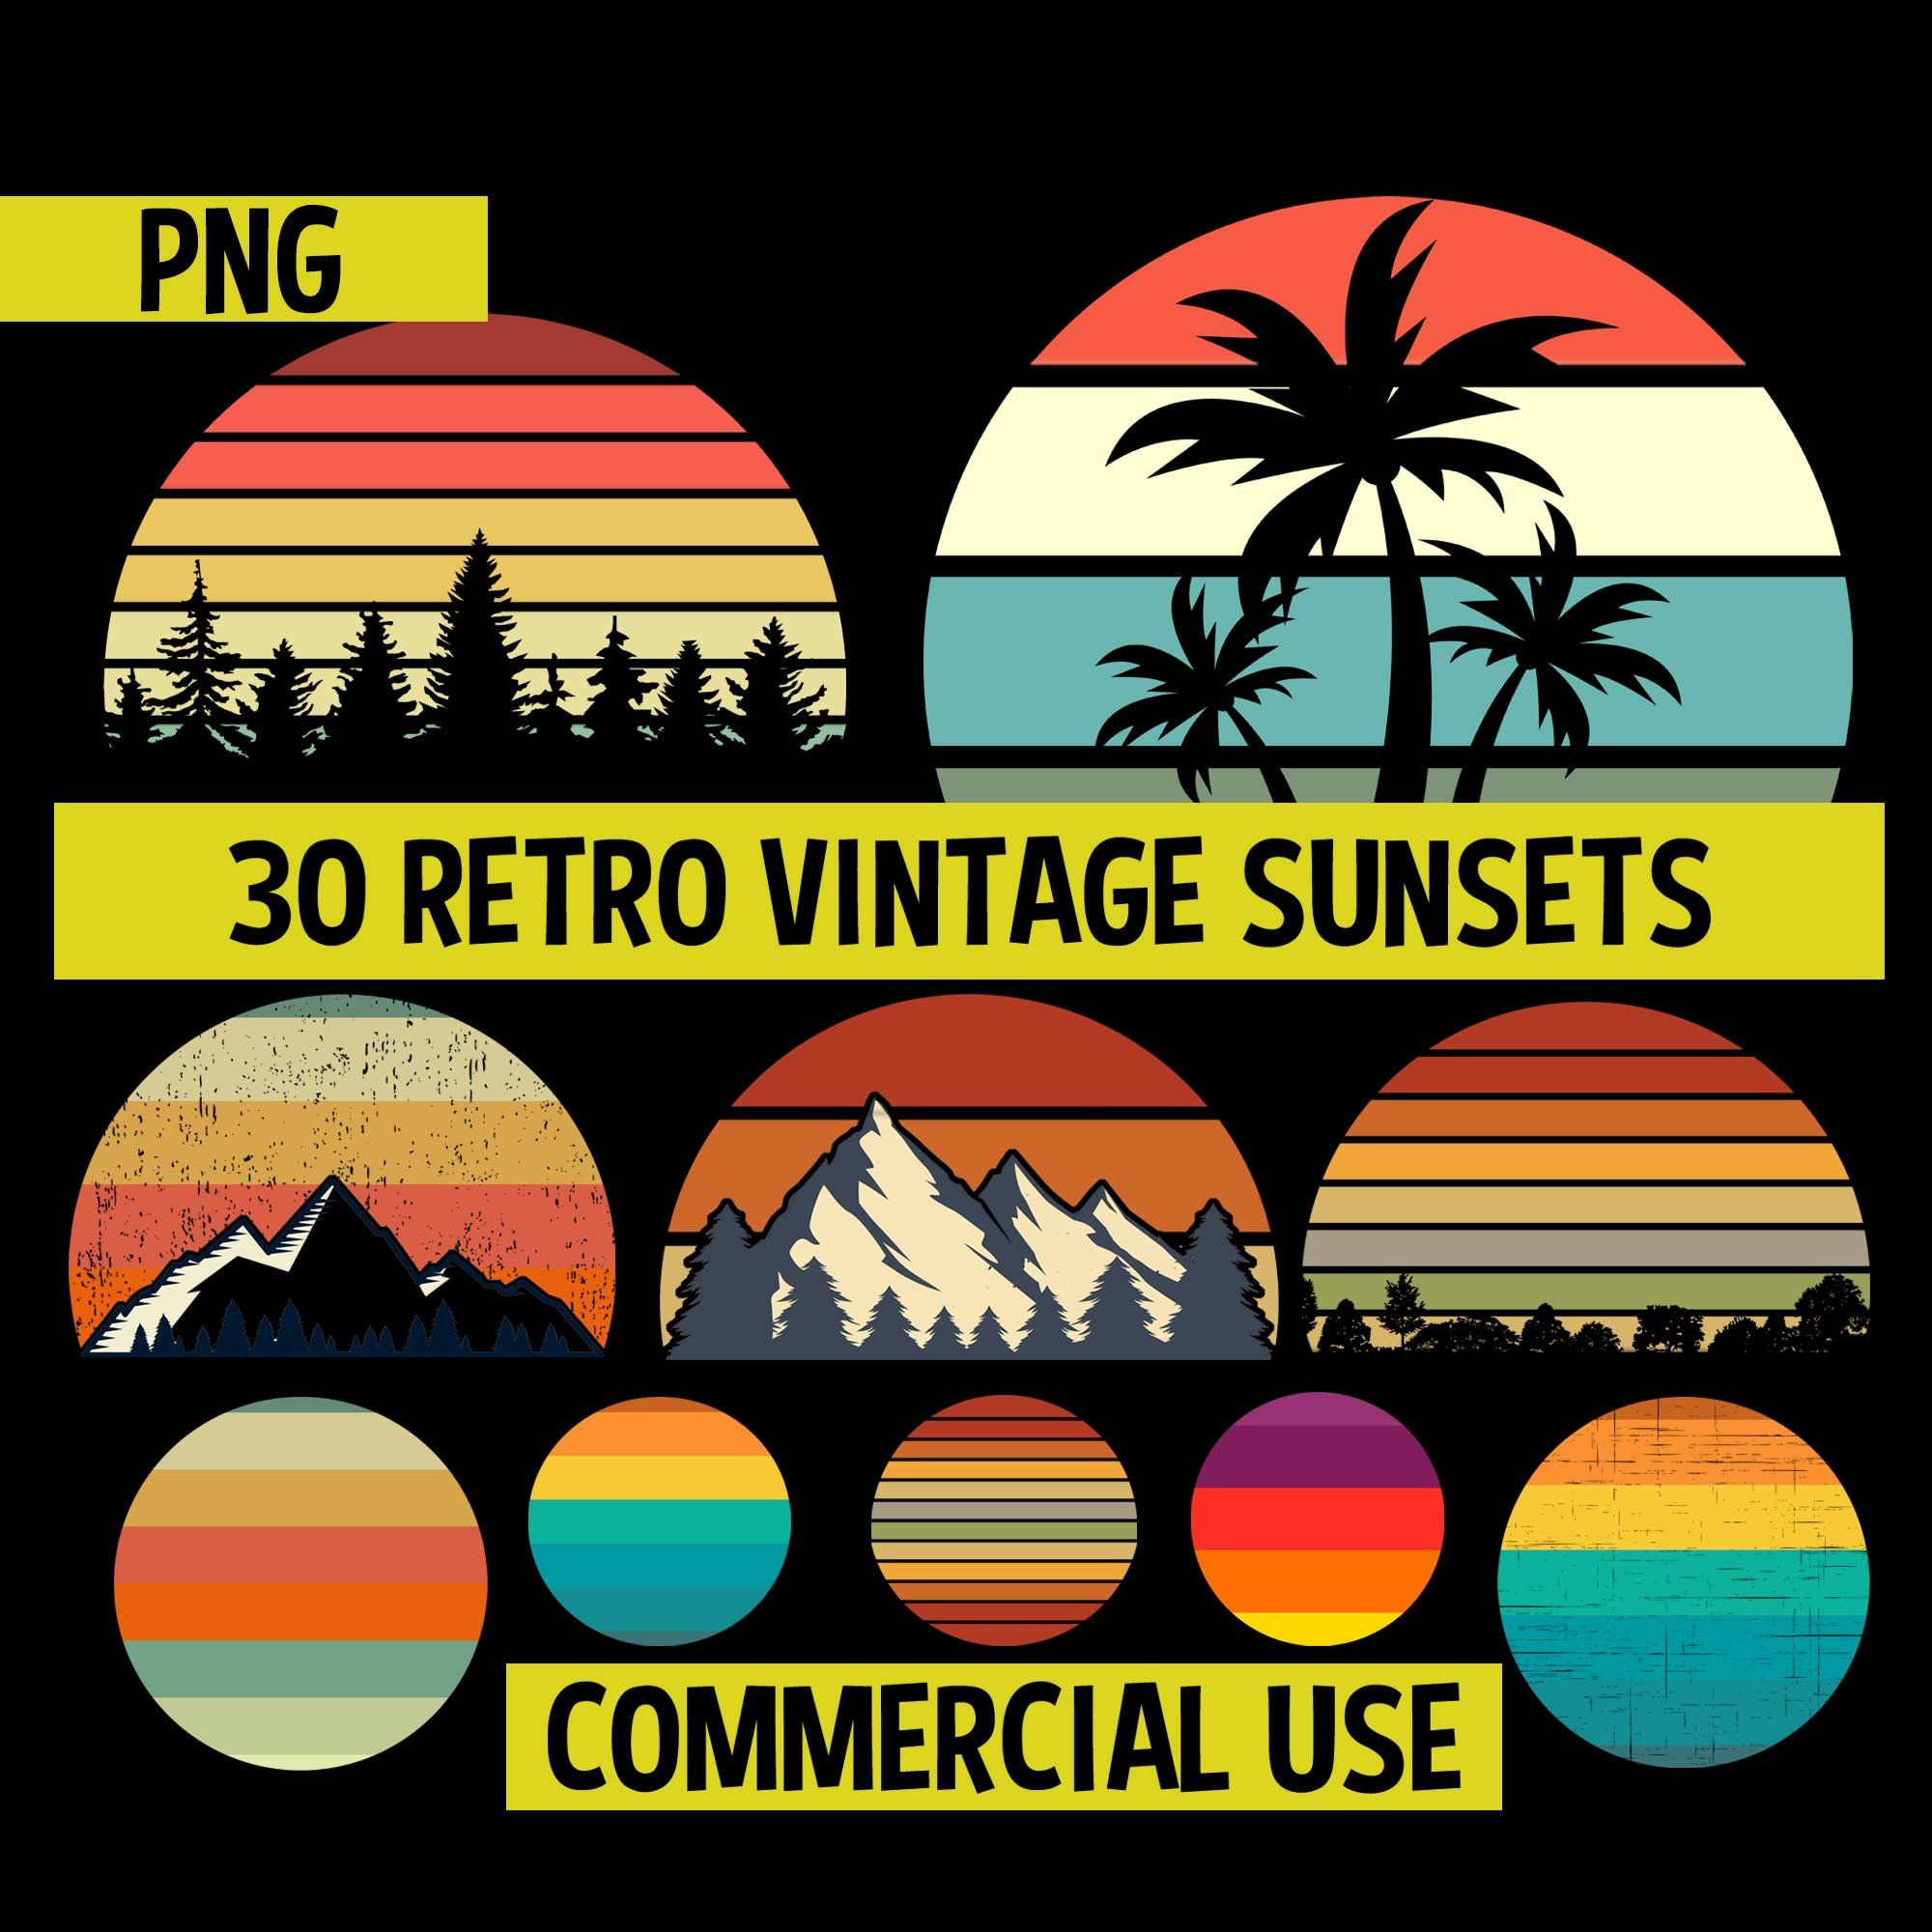 Retro Vintage Sunsets Pack 1 30 Retro Sunset Clipart Png Digital Download Mountains Trees Summer Beach Commercial License In 2020 Retro Vintage Retro Clip Art